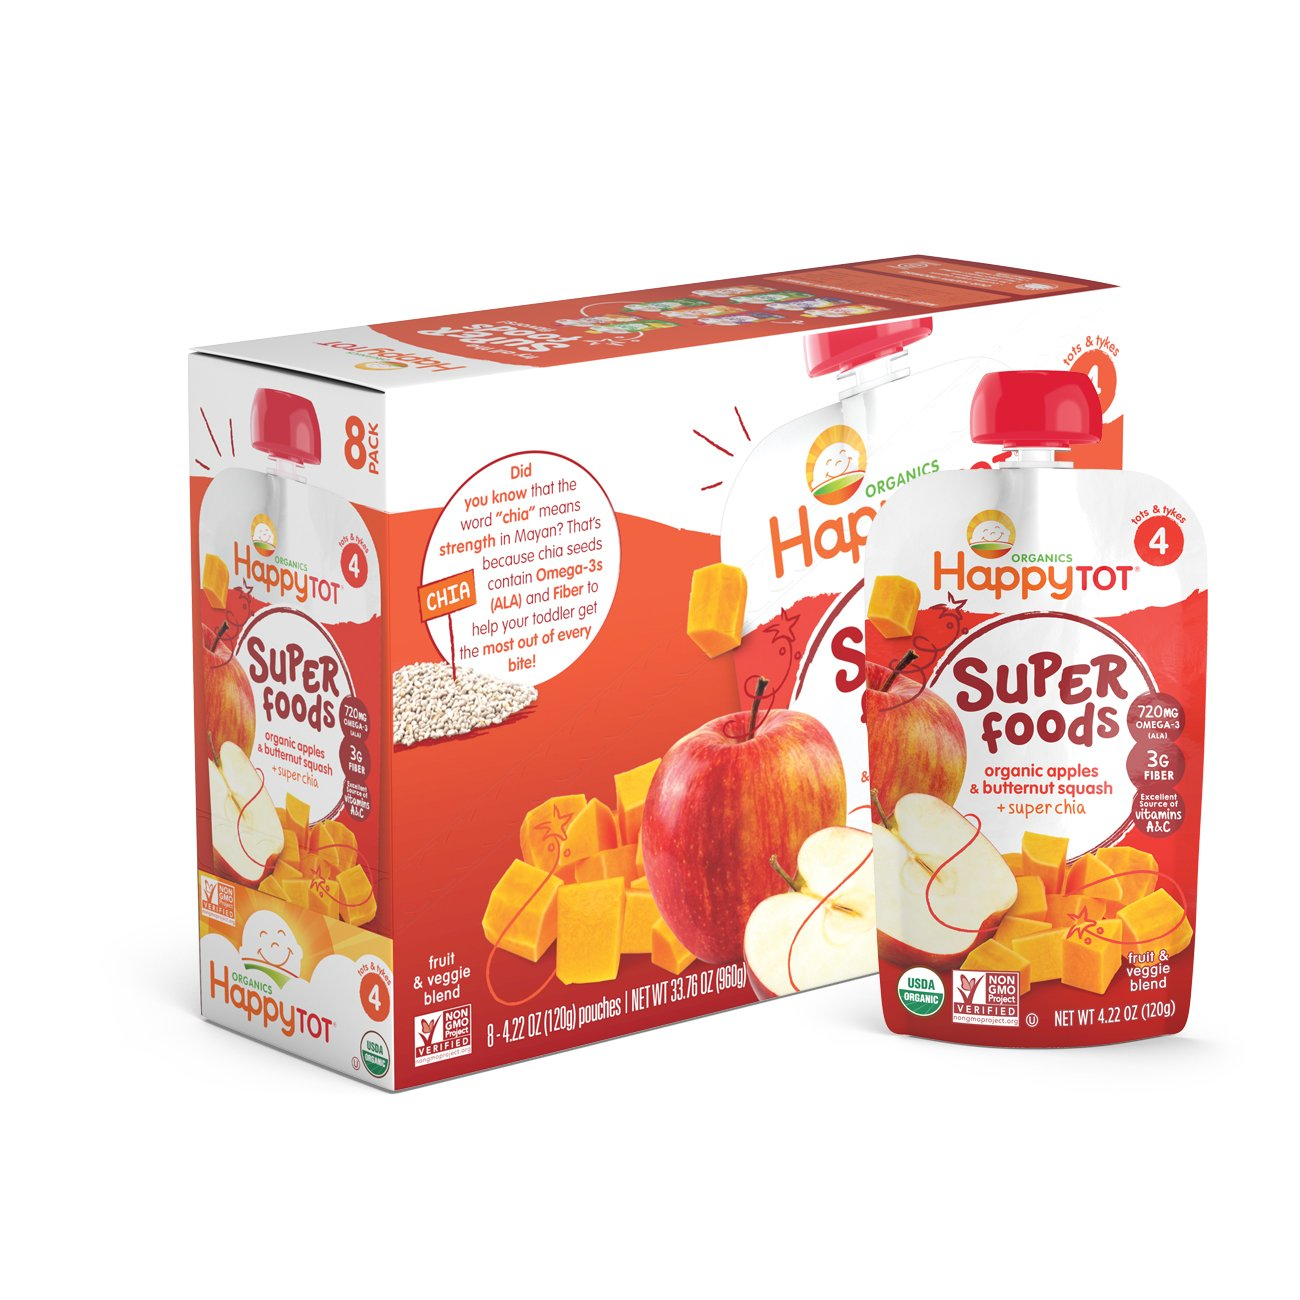 Happy Tot Organic Stage 4 Super Foods Apples & Butternut Squash + Super Chia 4.22 Ounce (Pack of 16), Non-GMO, Gluten Free, 3g of Fiber, Excellent source of vitamins A & C